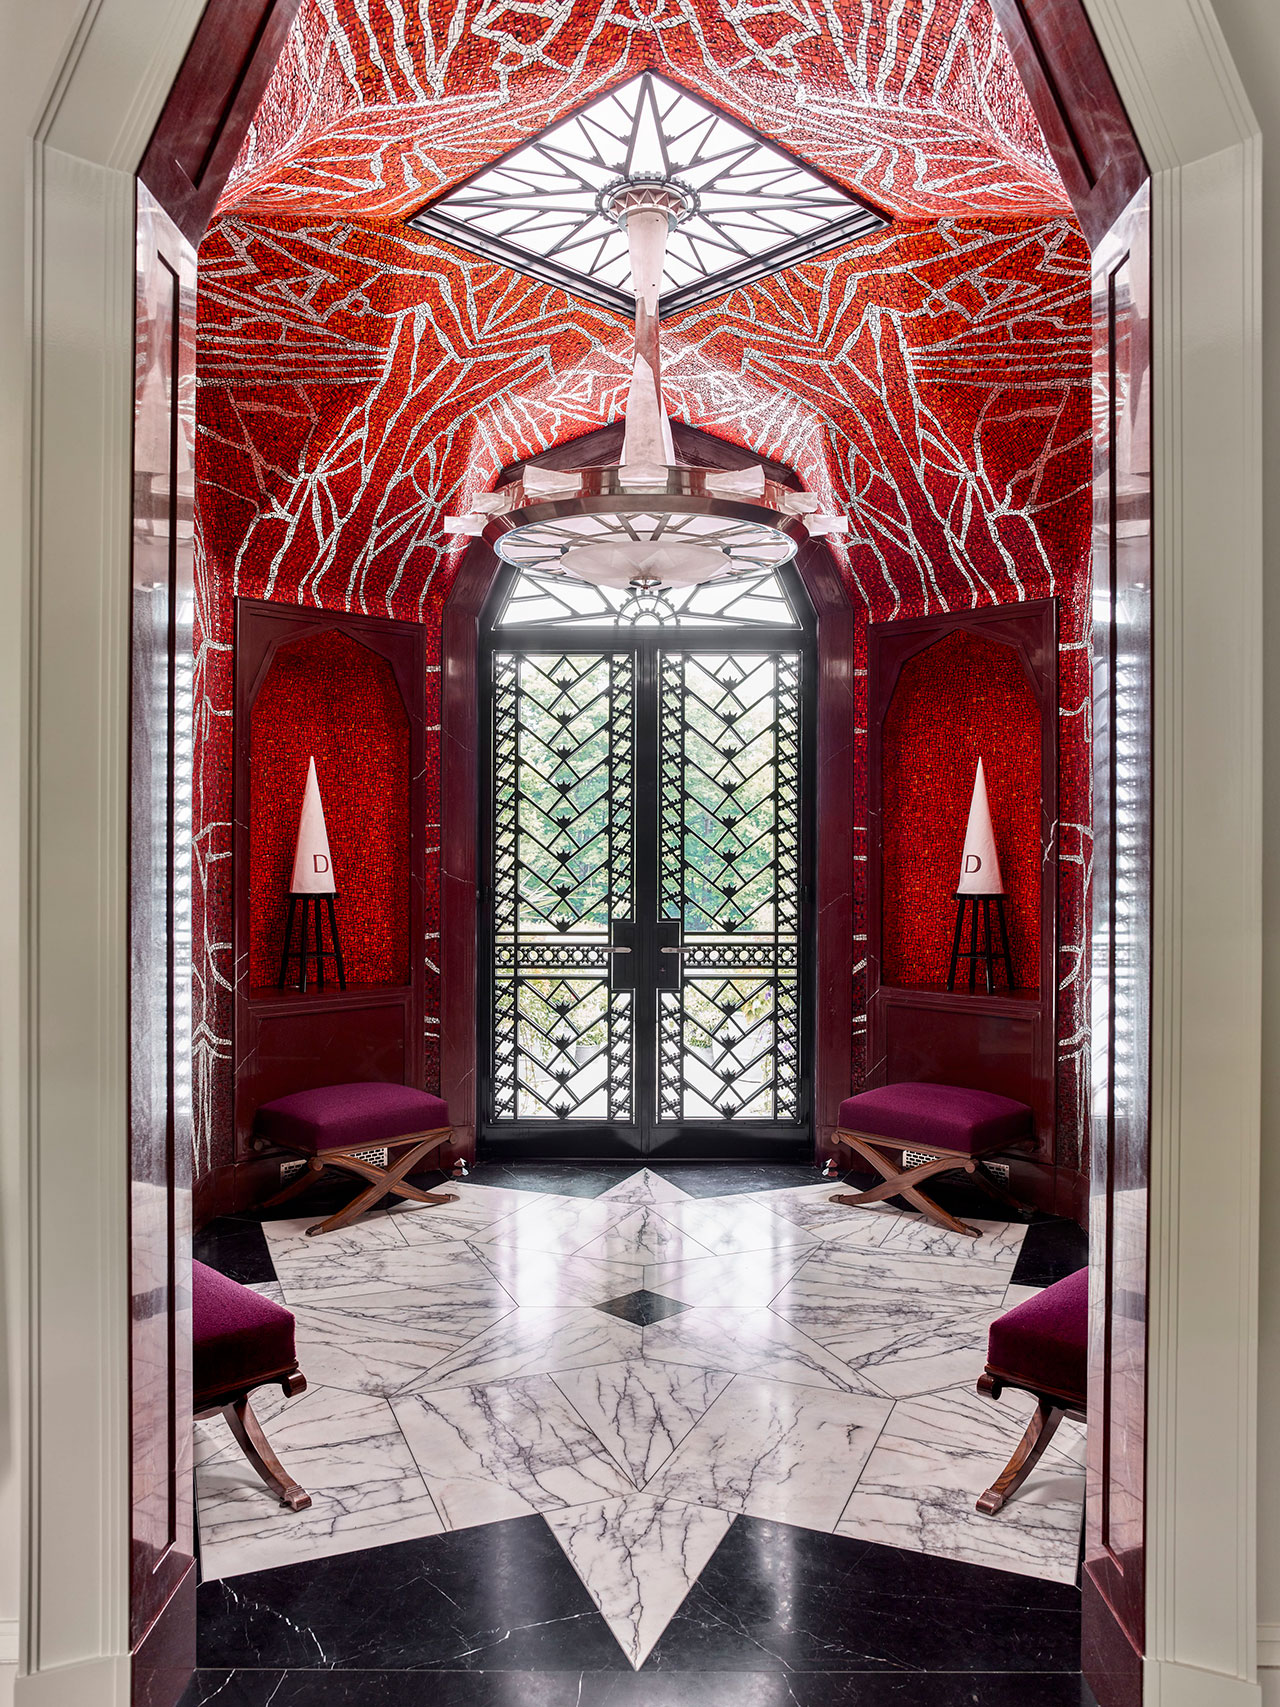 Entrance Hall: A nickel and cast-glass chandelier by Todd Anderson centers the octagonal space. The black-and-white marble floor tiles are laid in a geometric pattern. X-form stools by Émile-Jacques Ruhlmann (ca. 1928) sit underneath the red Laguna marble–framed niches. The front door's black steel grilles are ornamented with sunrise motifs and automotive gears. Photography by Eric Piasecki.